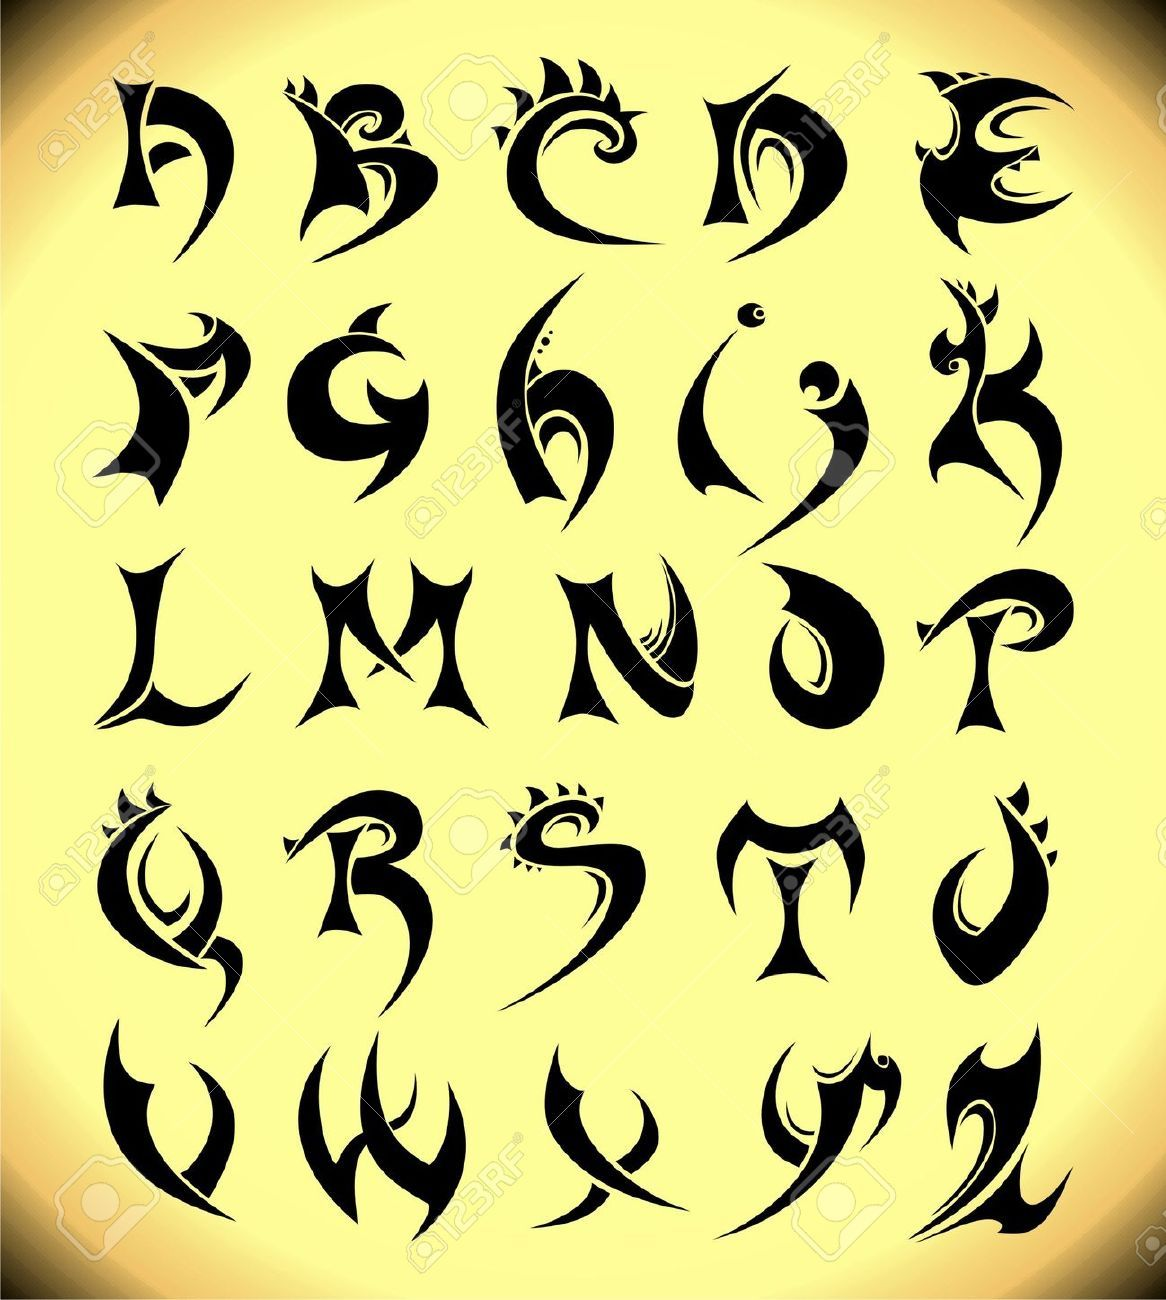 Alphabet S Tattoo Designs For Men 17 Best Images About Cool Fonts How To Draw And